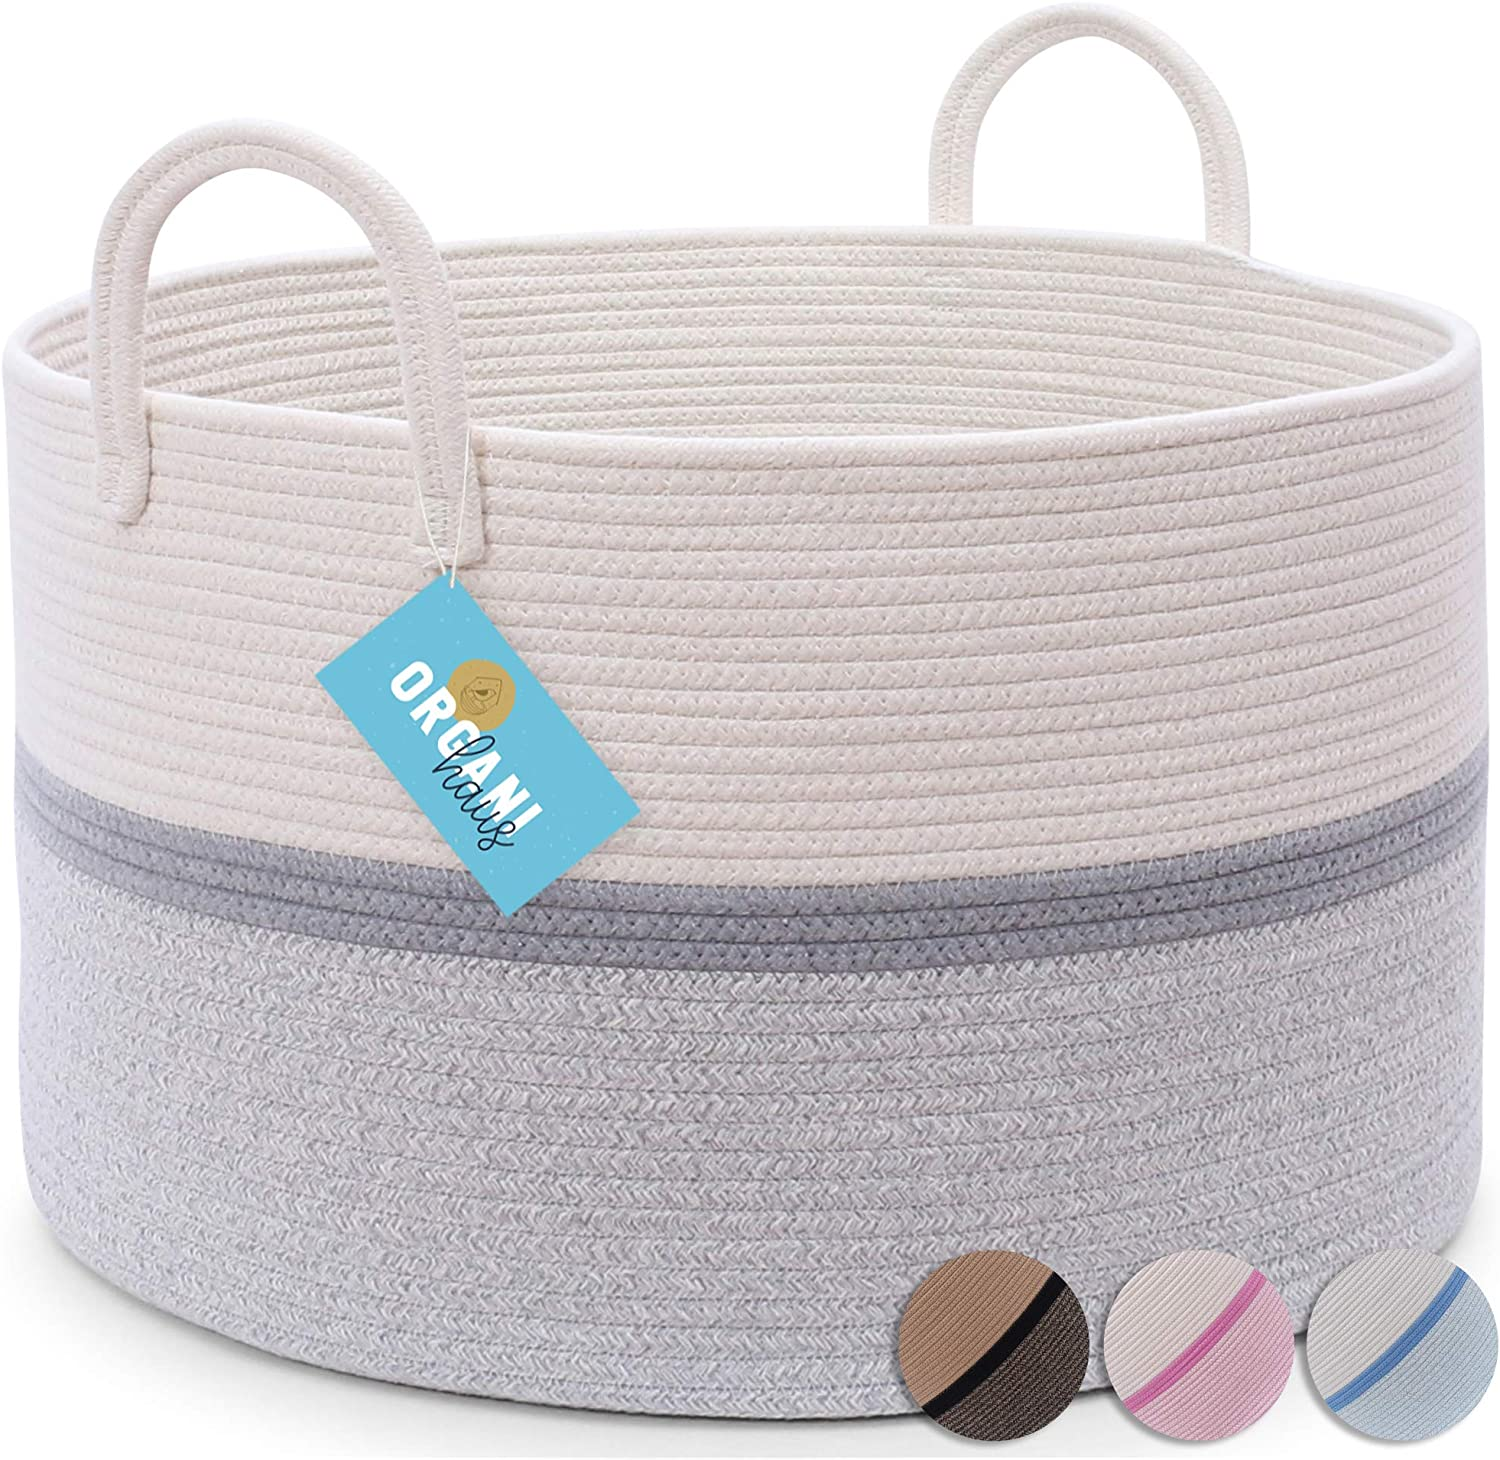 """OrganiHaus XX-Large Grey Nursery Basket of Natural Cotton Rope Woven with Multiple Blended Colors   Perfect for Laundry, Toys, Baby Clothing, Diapers, Storage   Stylish 20""""x13"""" Baby Hamper Basket"""